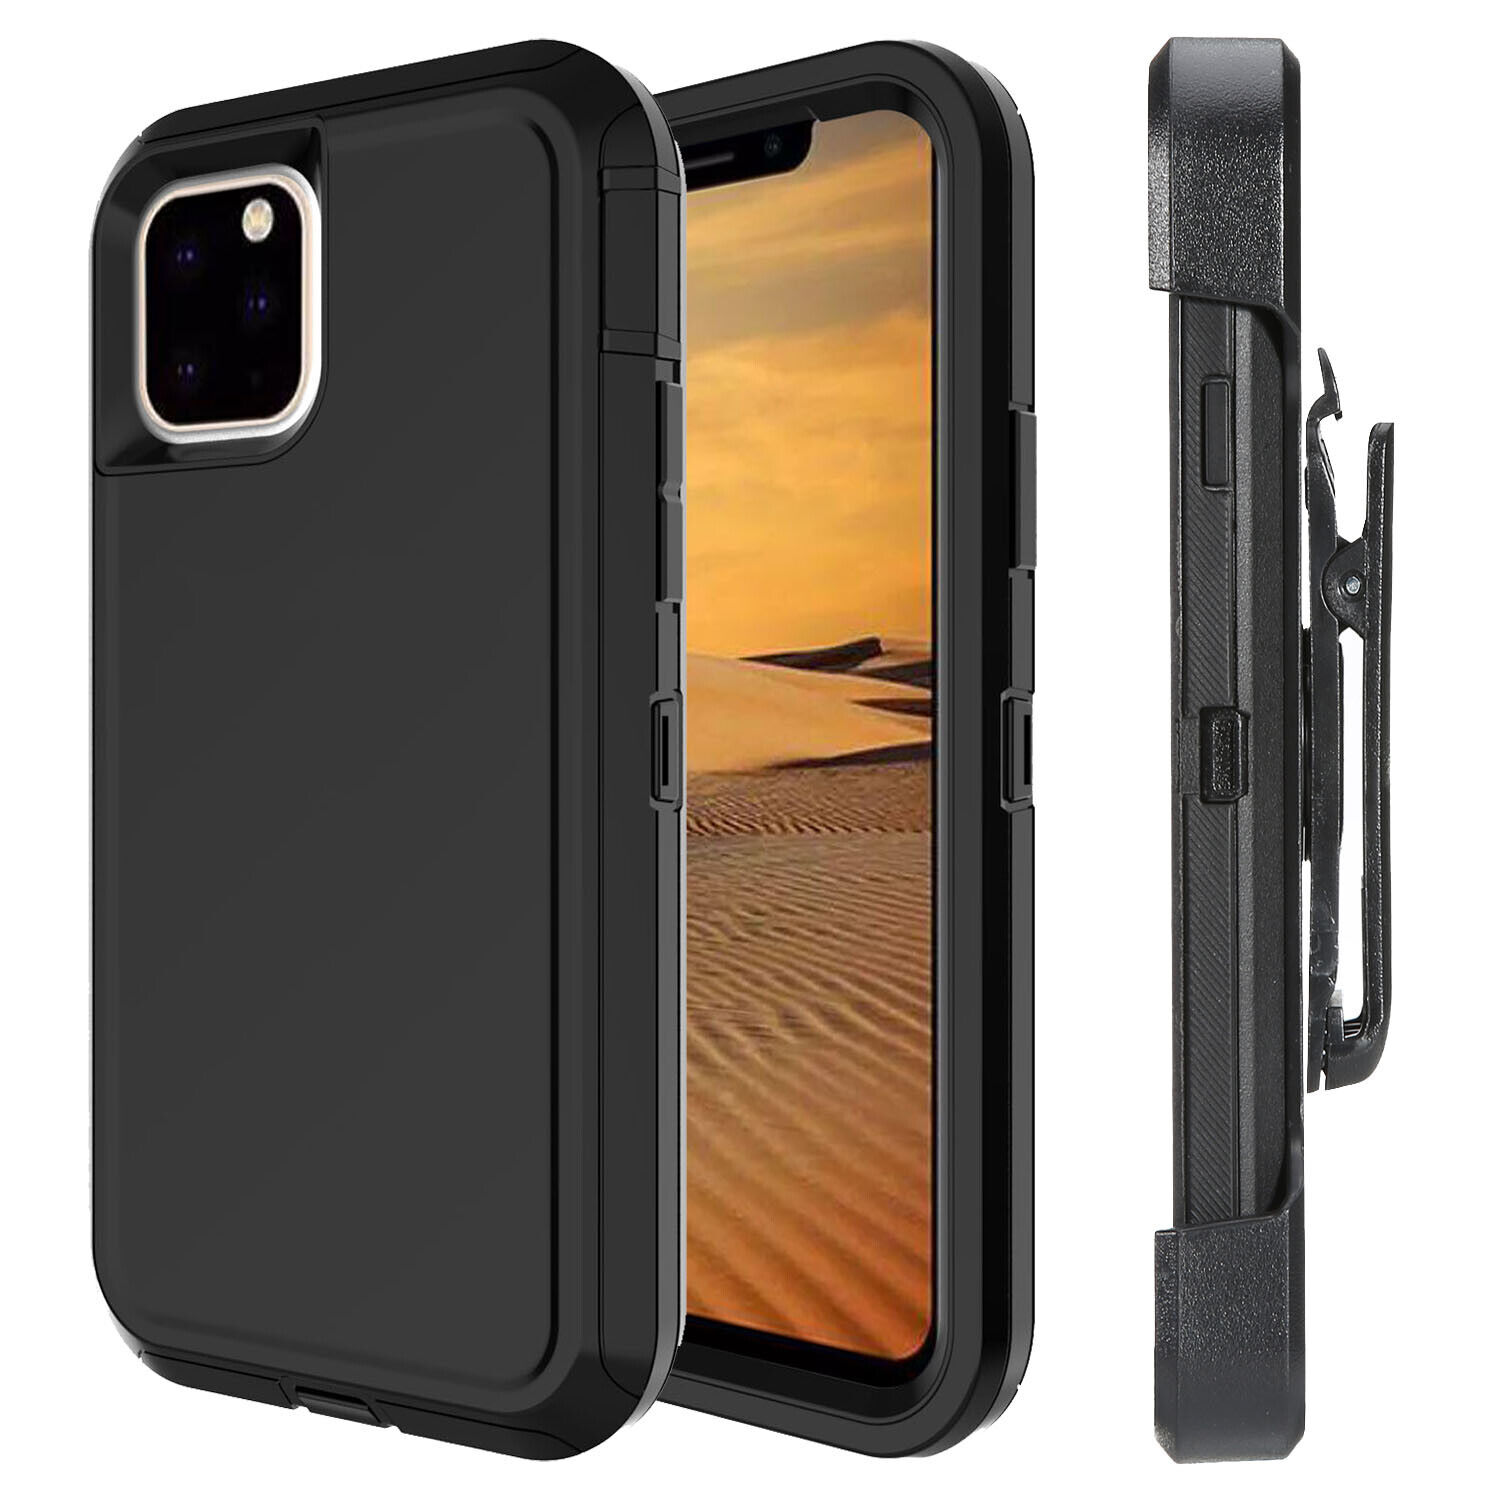 Case For iPhone 11 12 Pro Max 7 Plus 8 Plus Screen Protector